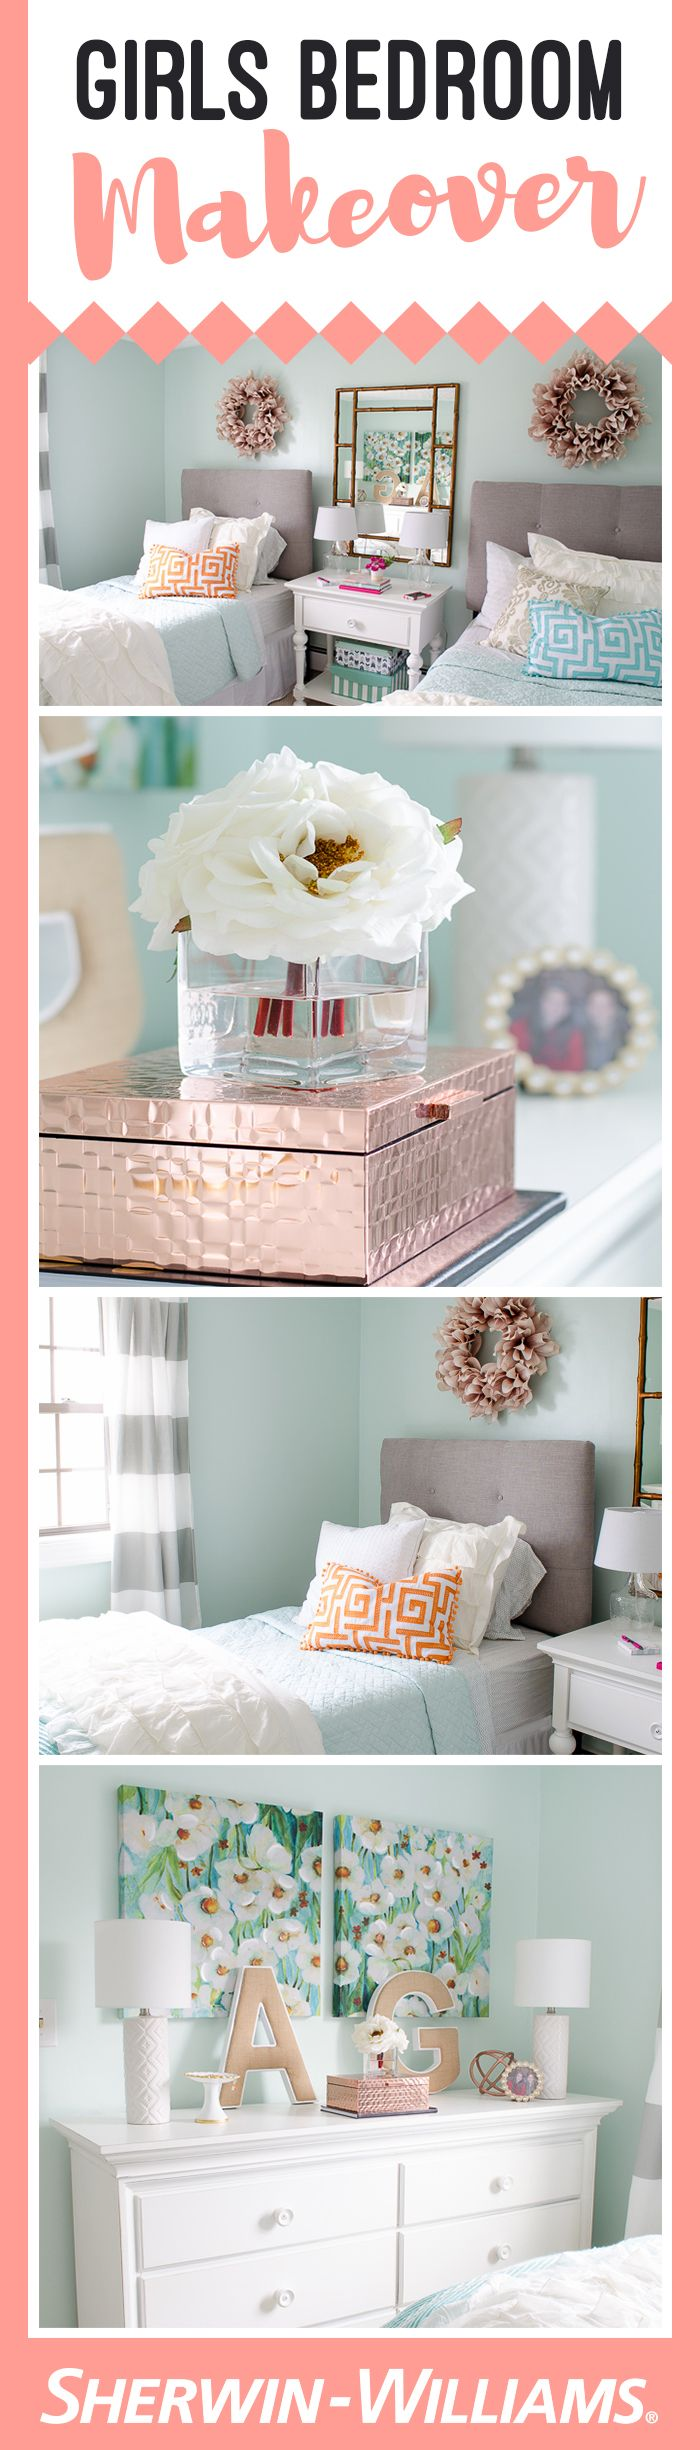 Sophisticated Teenage Bedroom 17 Best Ideas About Sophisticated Bedroom On Pinterest Master